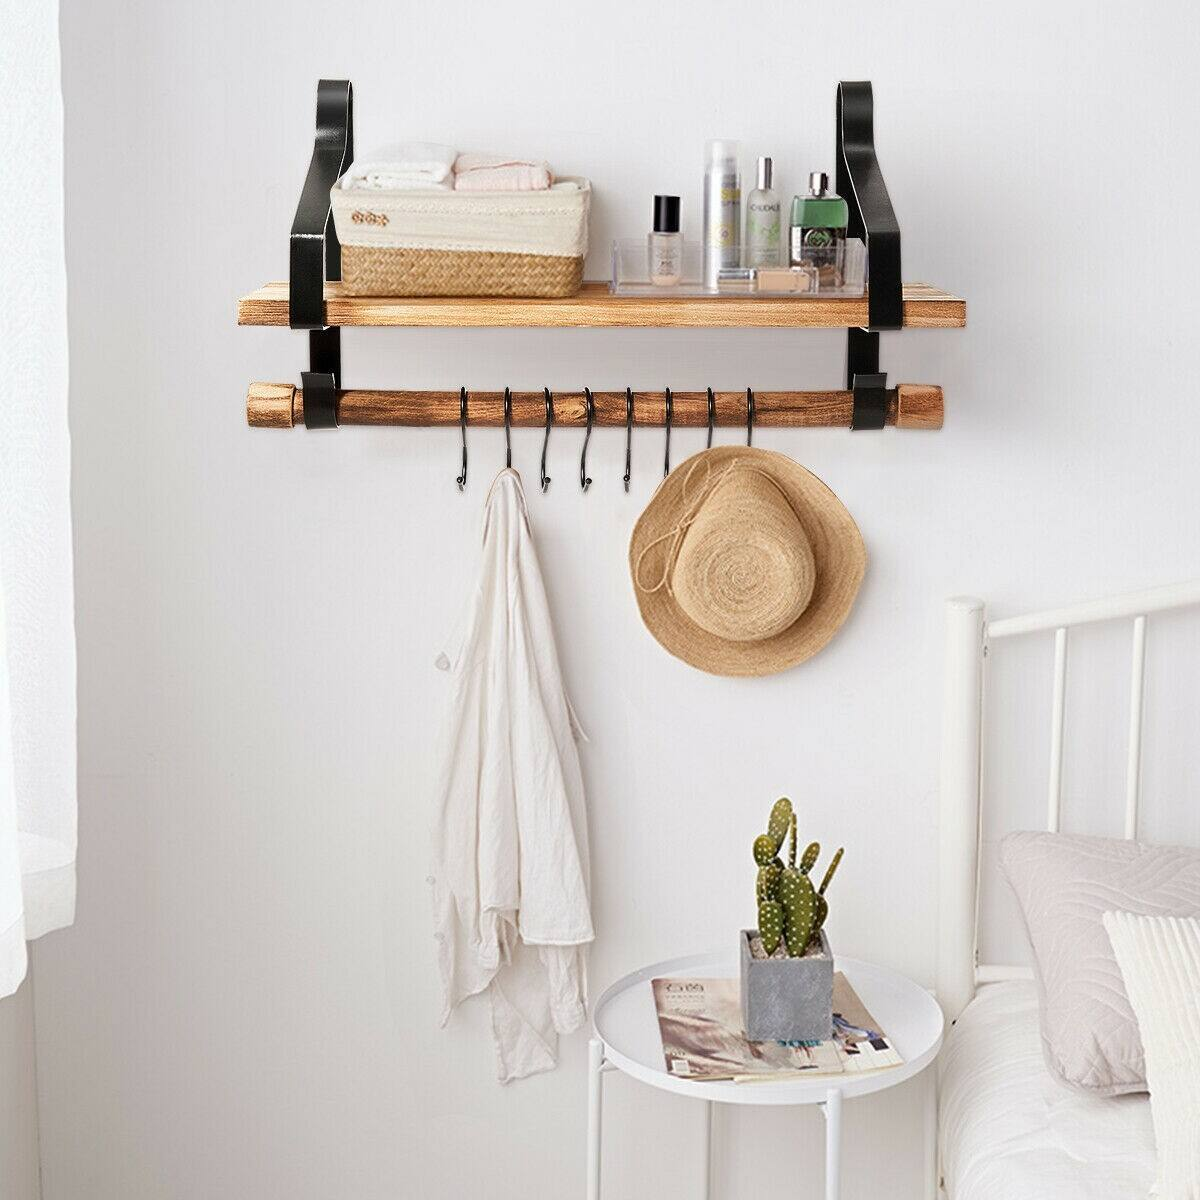 Costway Wooden Wall-Mounted Floating Storage Shelf with Removable Towel Bar-$21 + Free Shipping